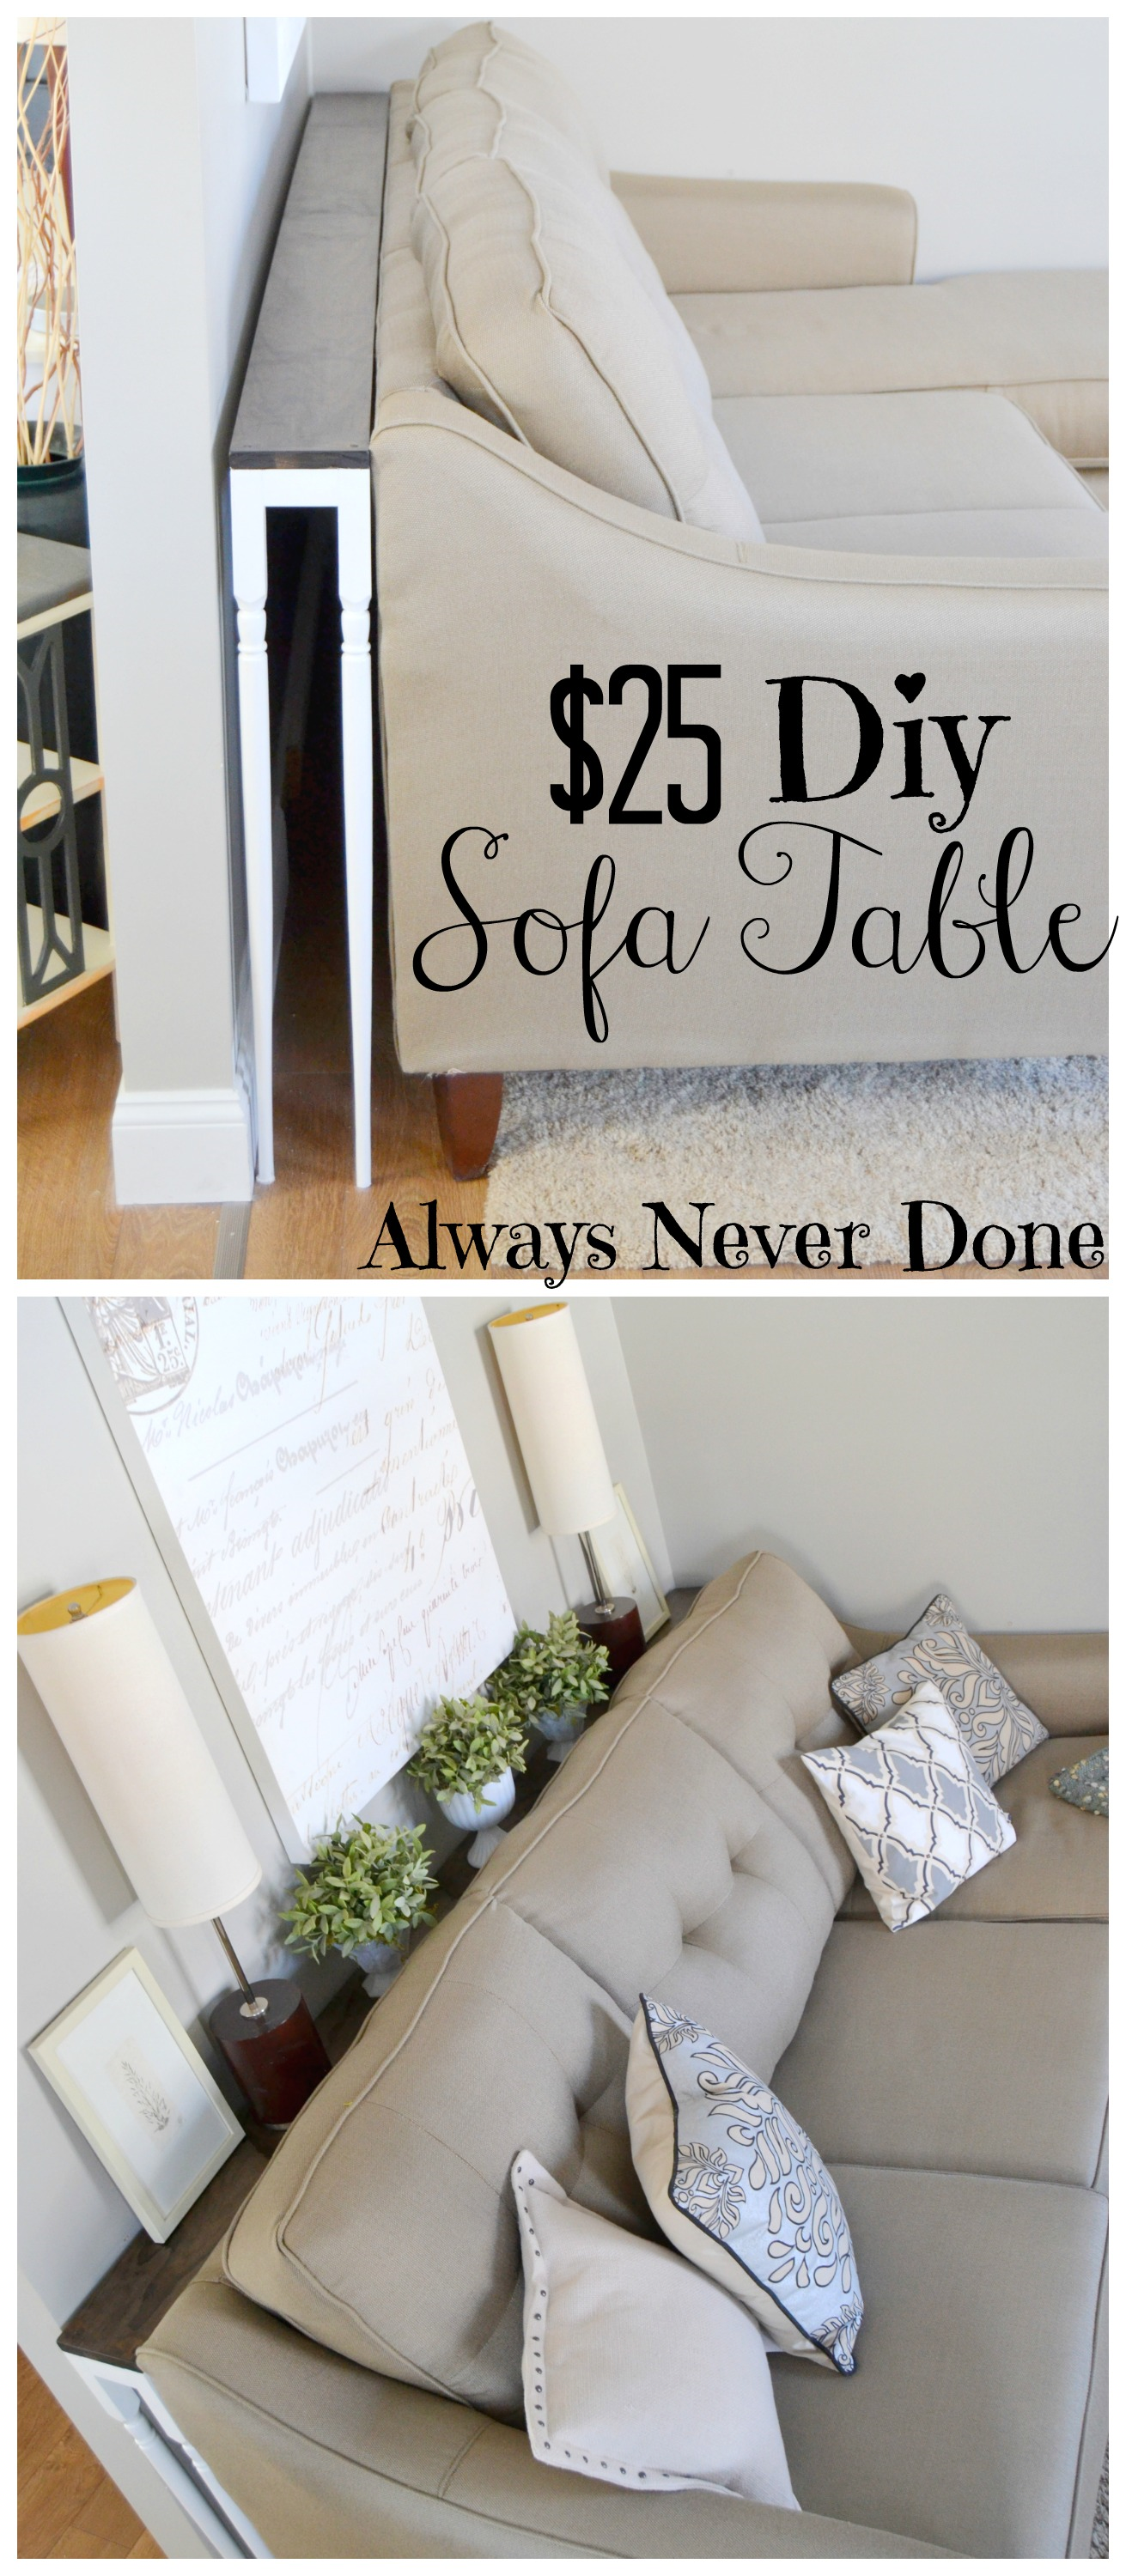 DIY Sofa Table for $25 using stair rails as legs